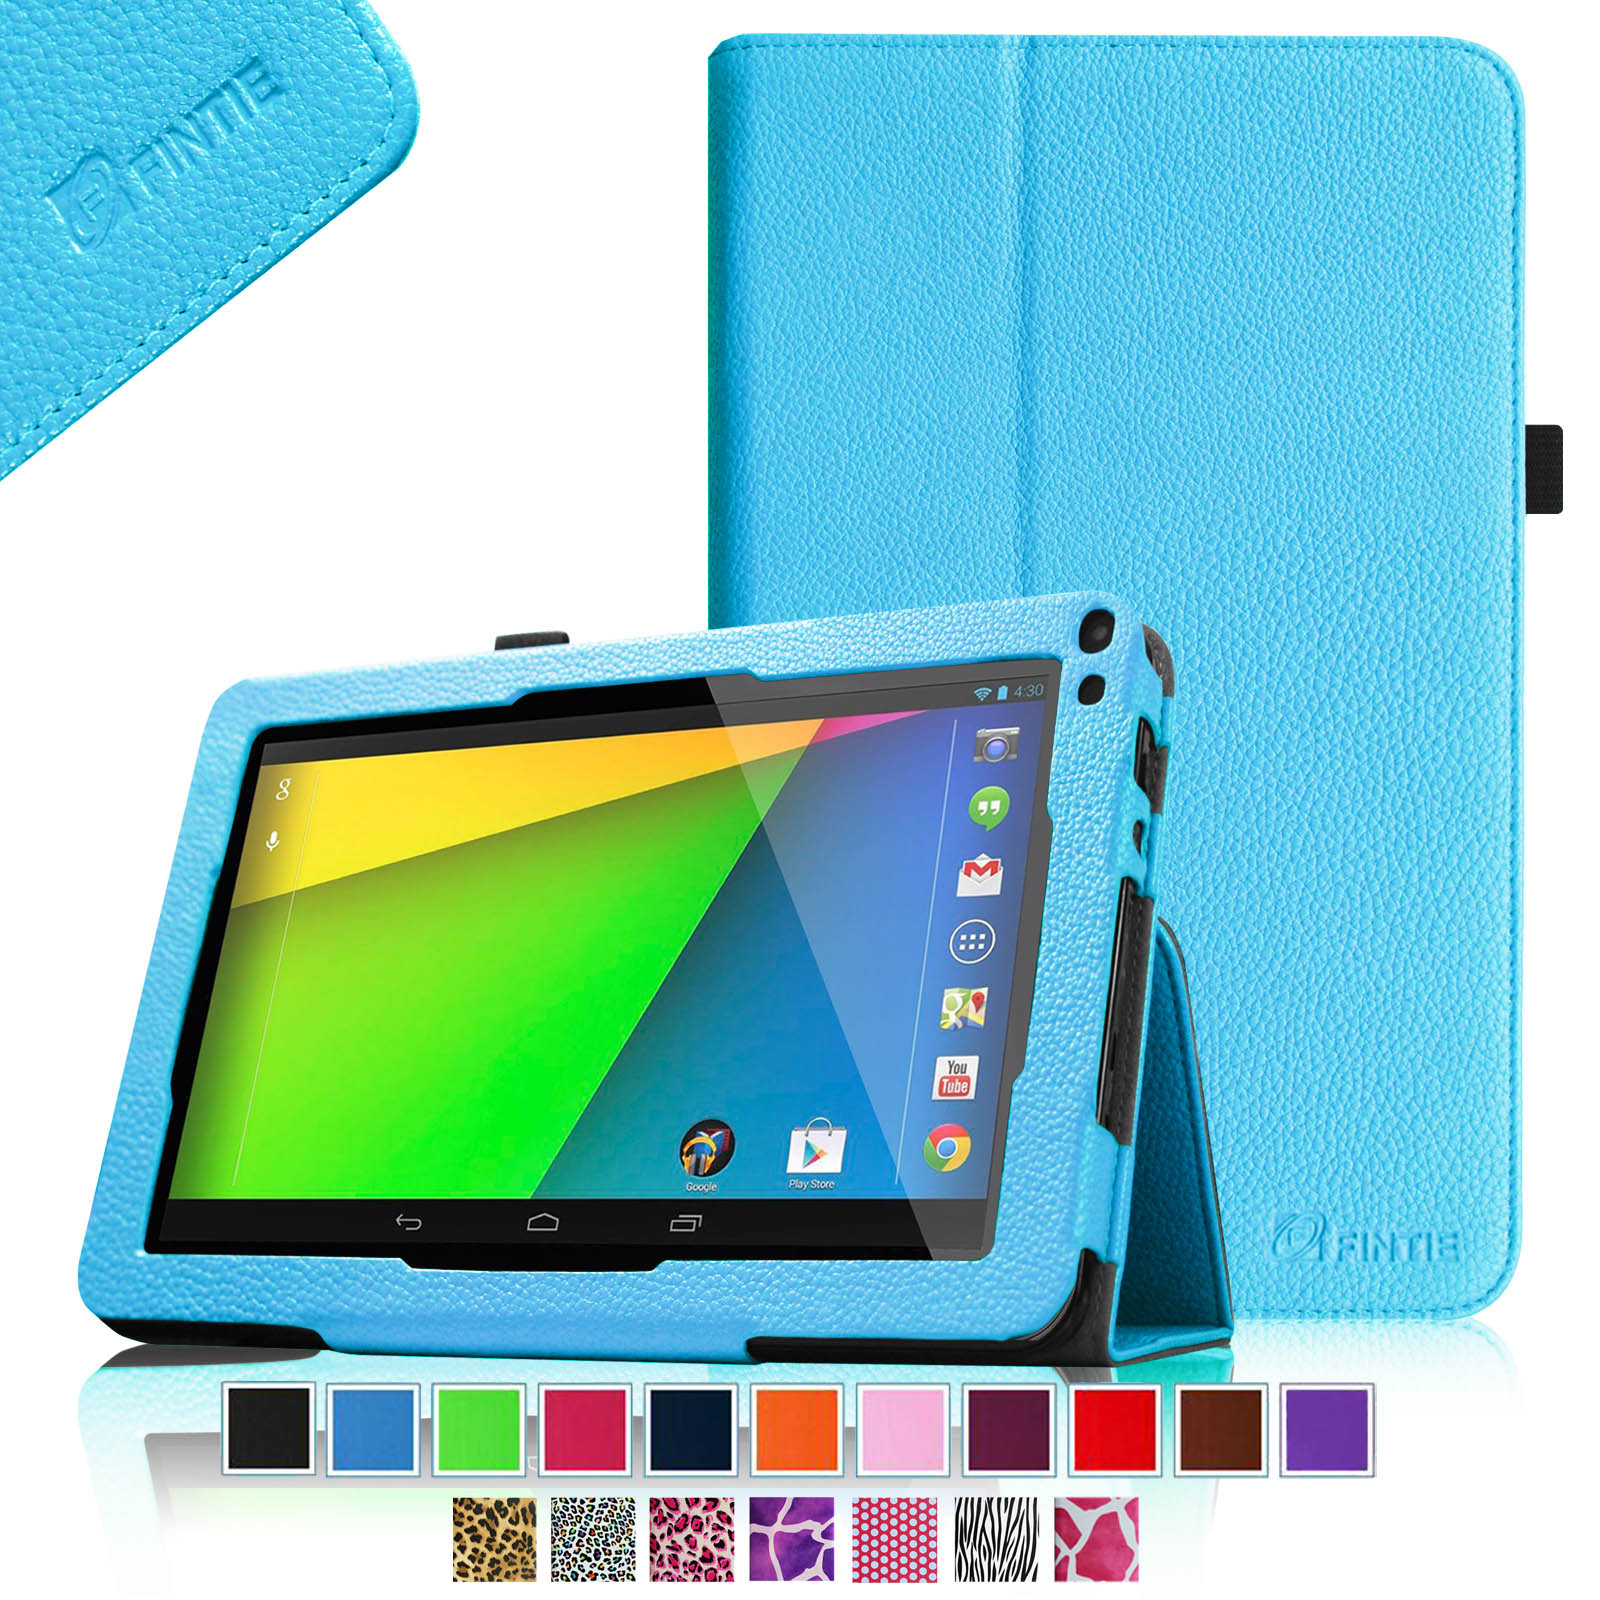 "RCA 9"" Tablet Case - Fintie Premium Leather Cover with Stylus Holder for RCA 9"" Tablet (Model# RCT6691W3), Blue"